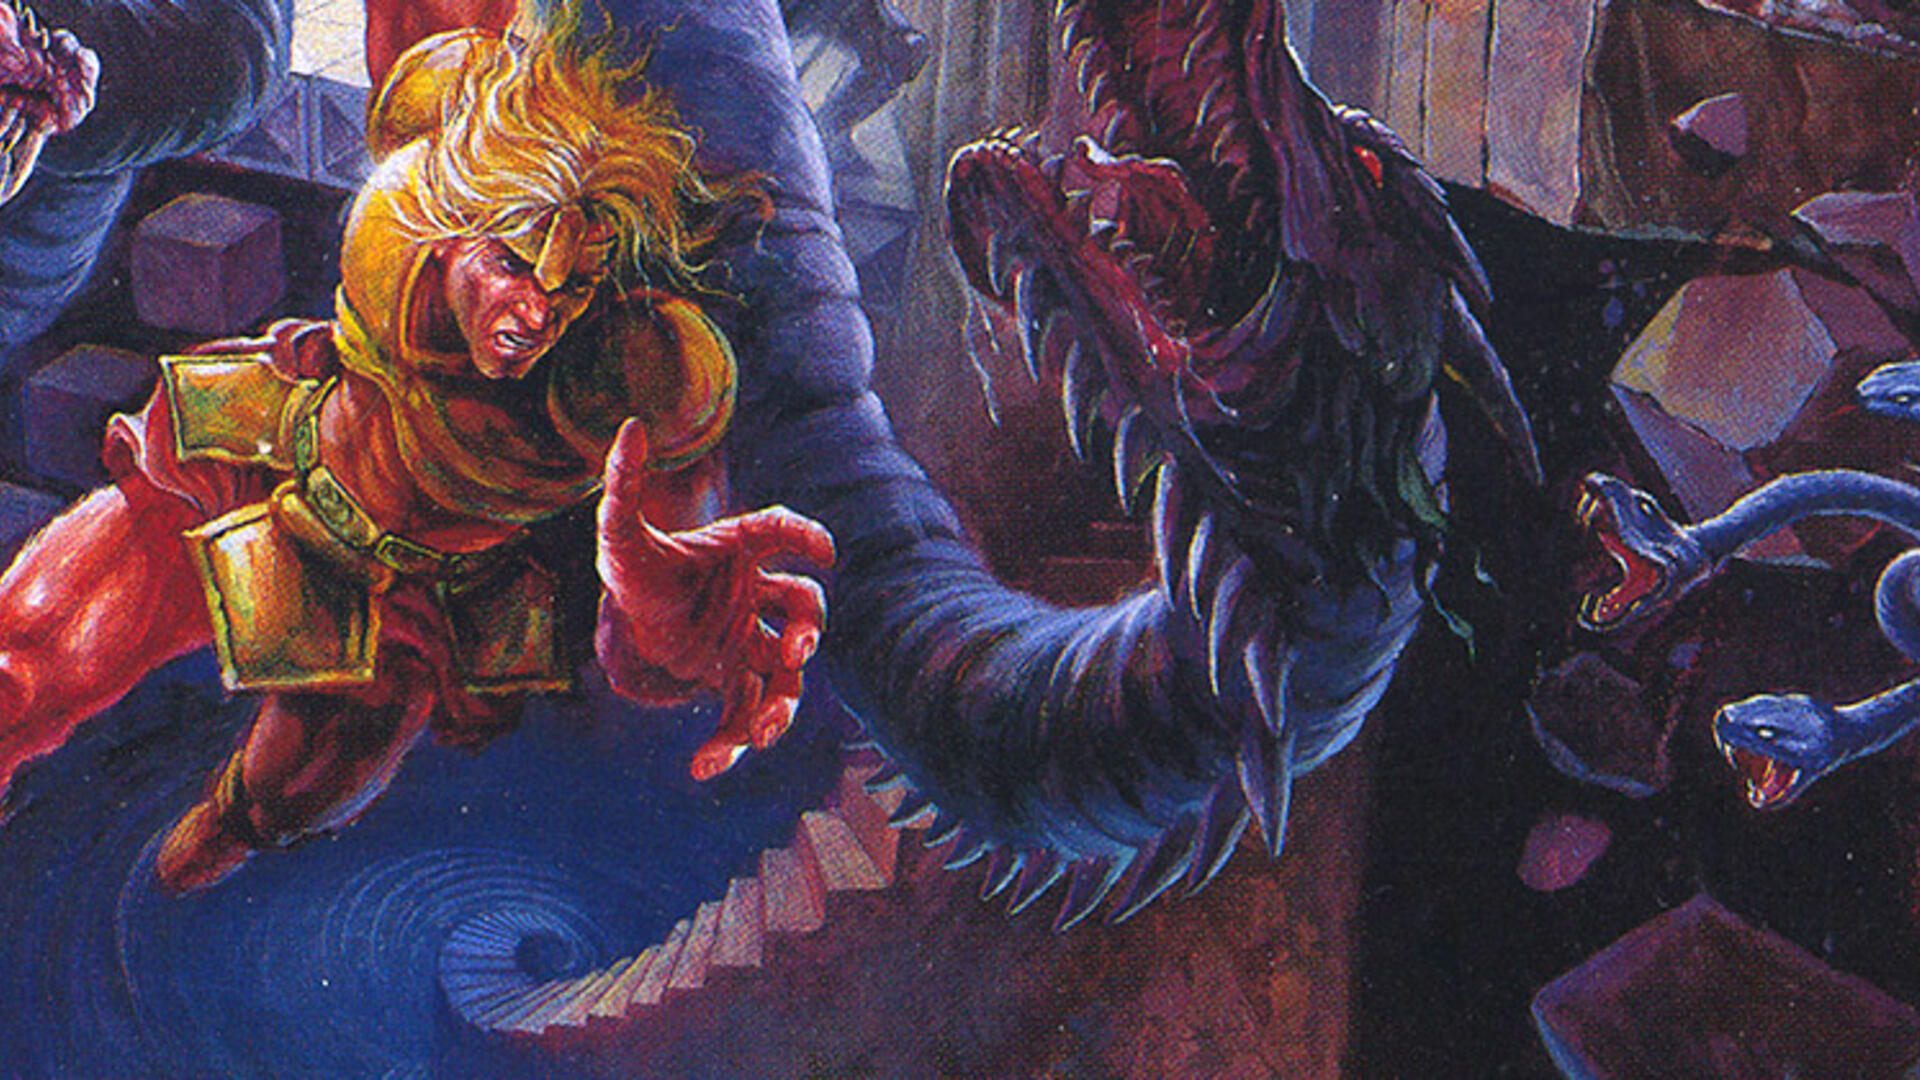 Virtual Spotlight: Super Castlevania IV